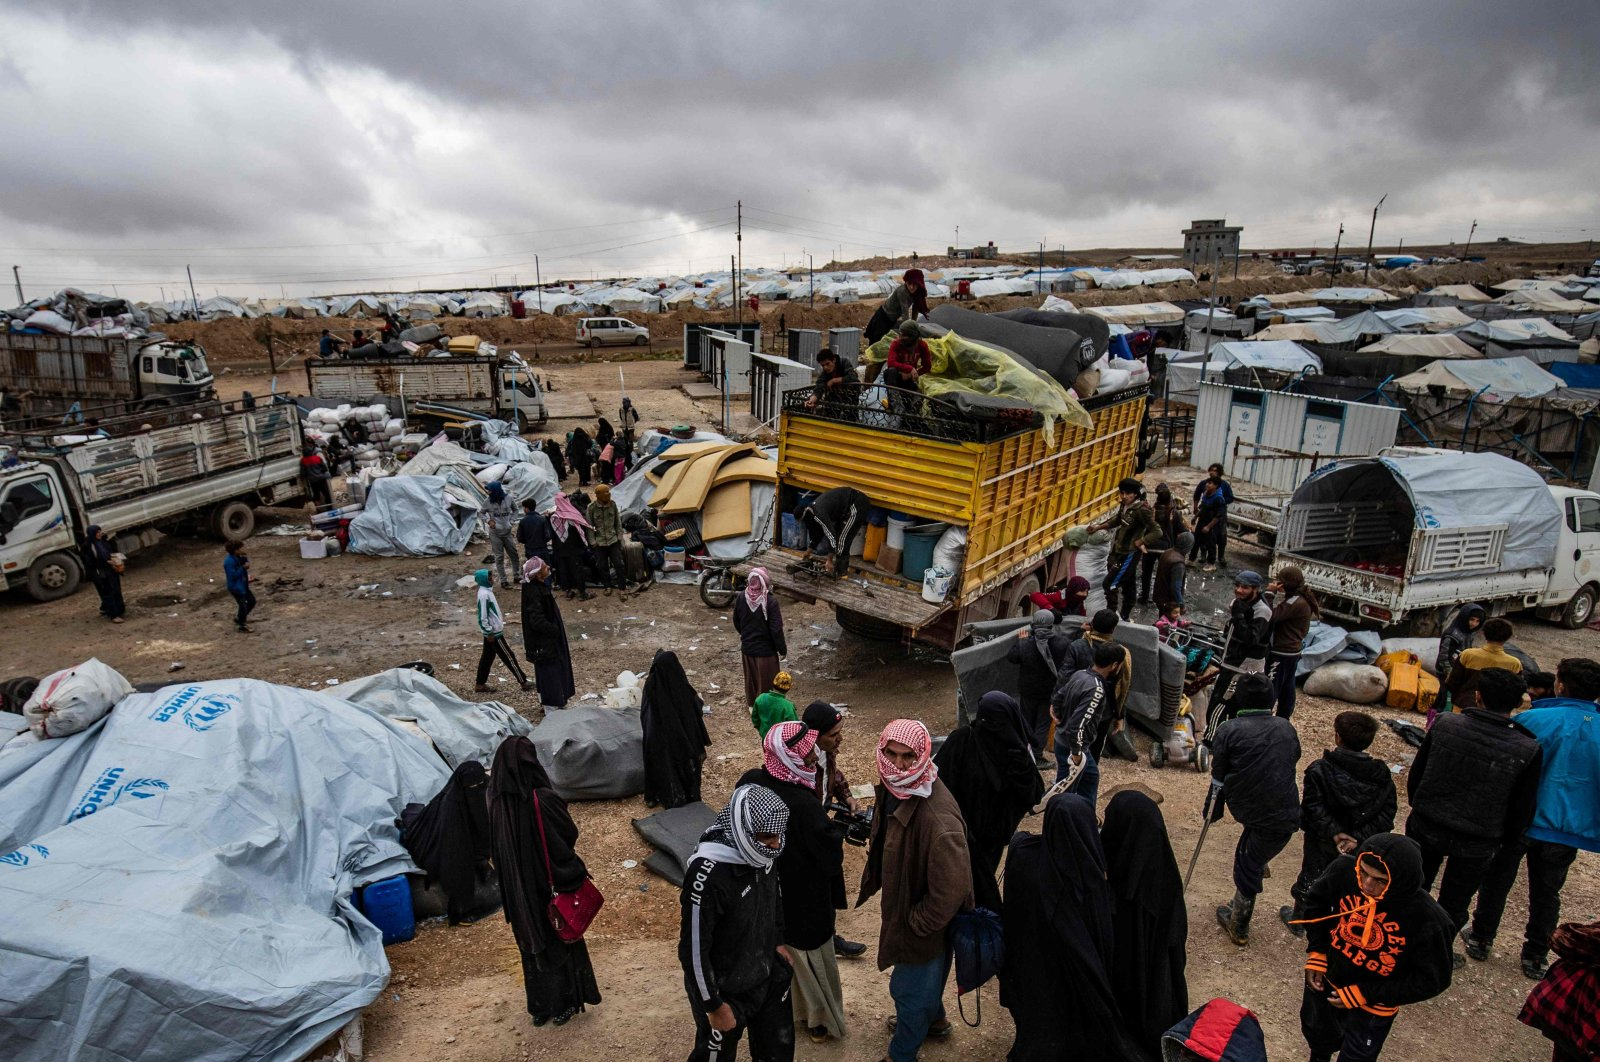 Syrians load their belongings onto trucks as they prepare to leave the YPG-run al-Hol camp, which holds relatives of alleged Daesh fighters, in the al-Hasakeh governorate of northeastern Syria, Nov. 16, 2020. (AFP Photo)